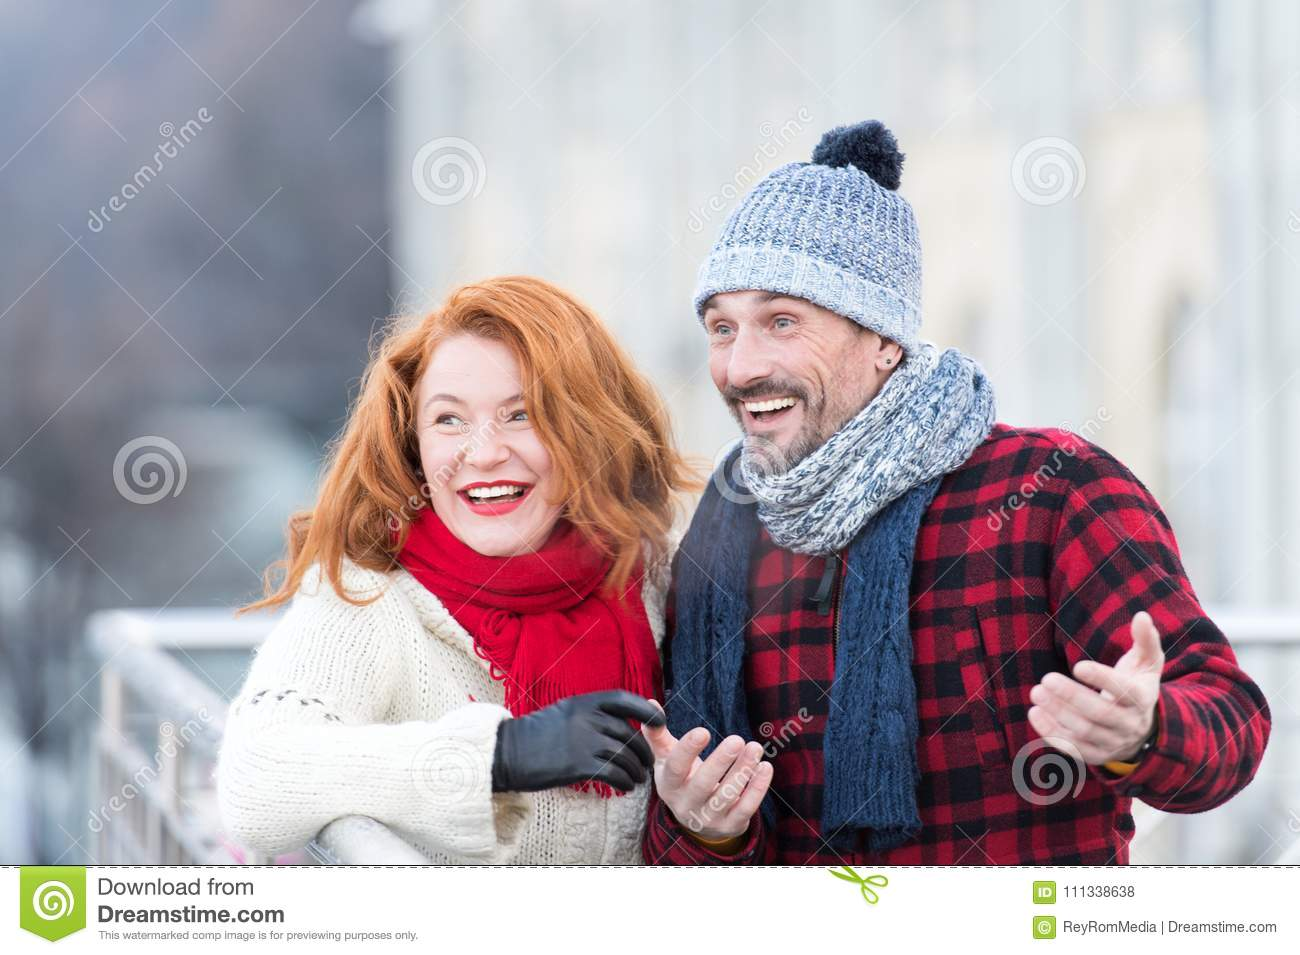 Surprised couple in the city. Surprised funny men with woman. Urban guy and lady have fun on meeting. Aged family wondered to city